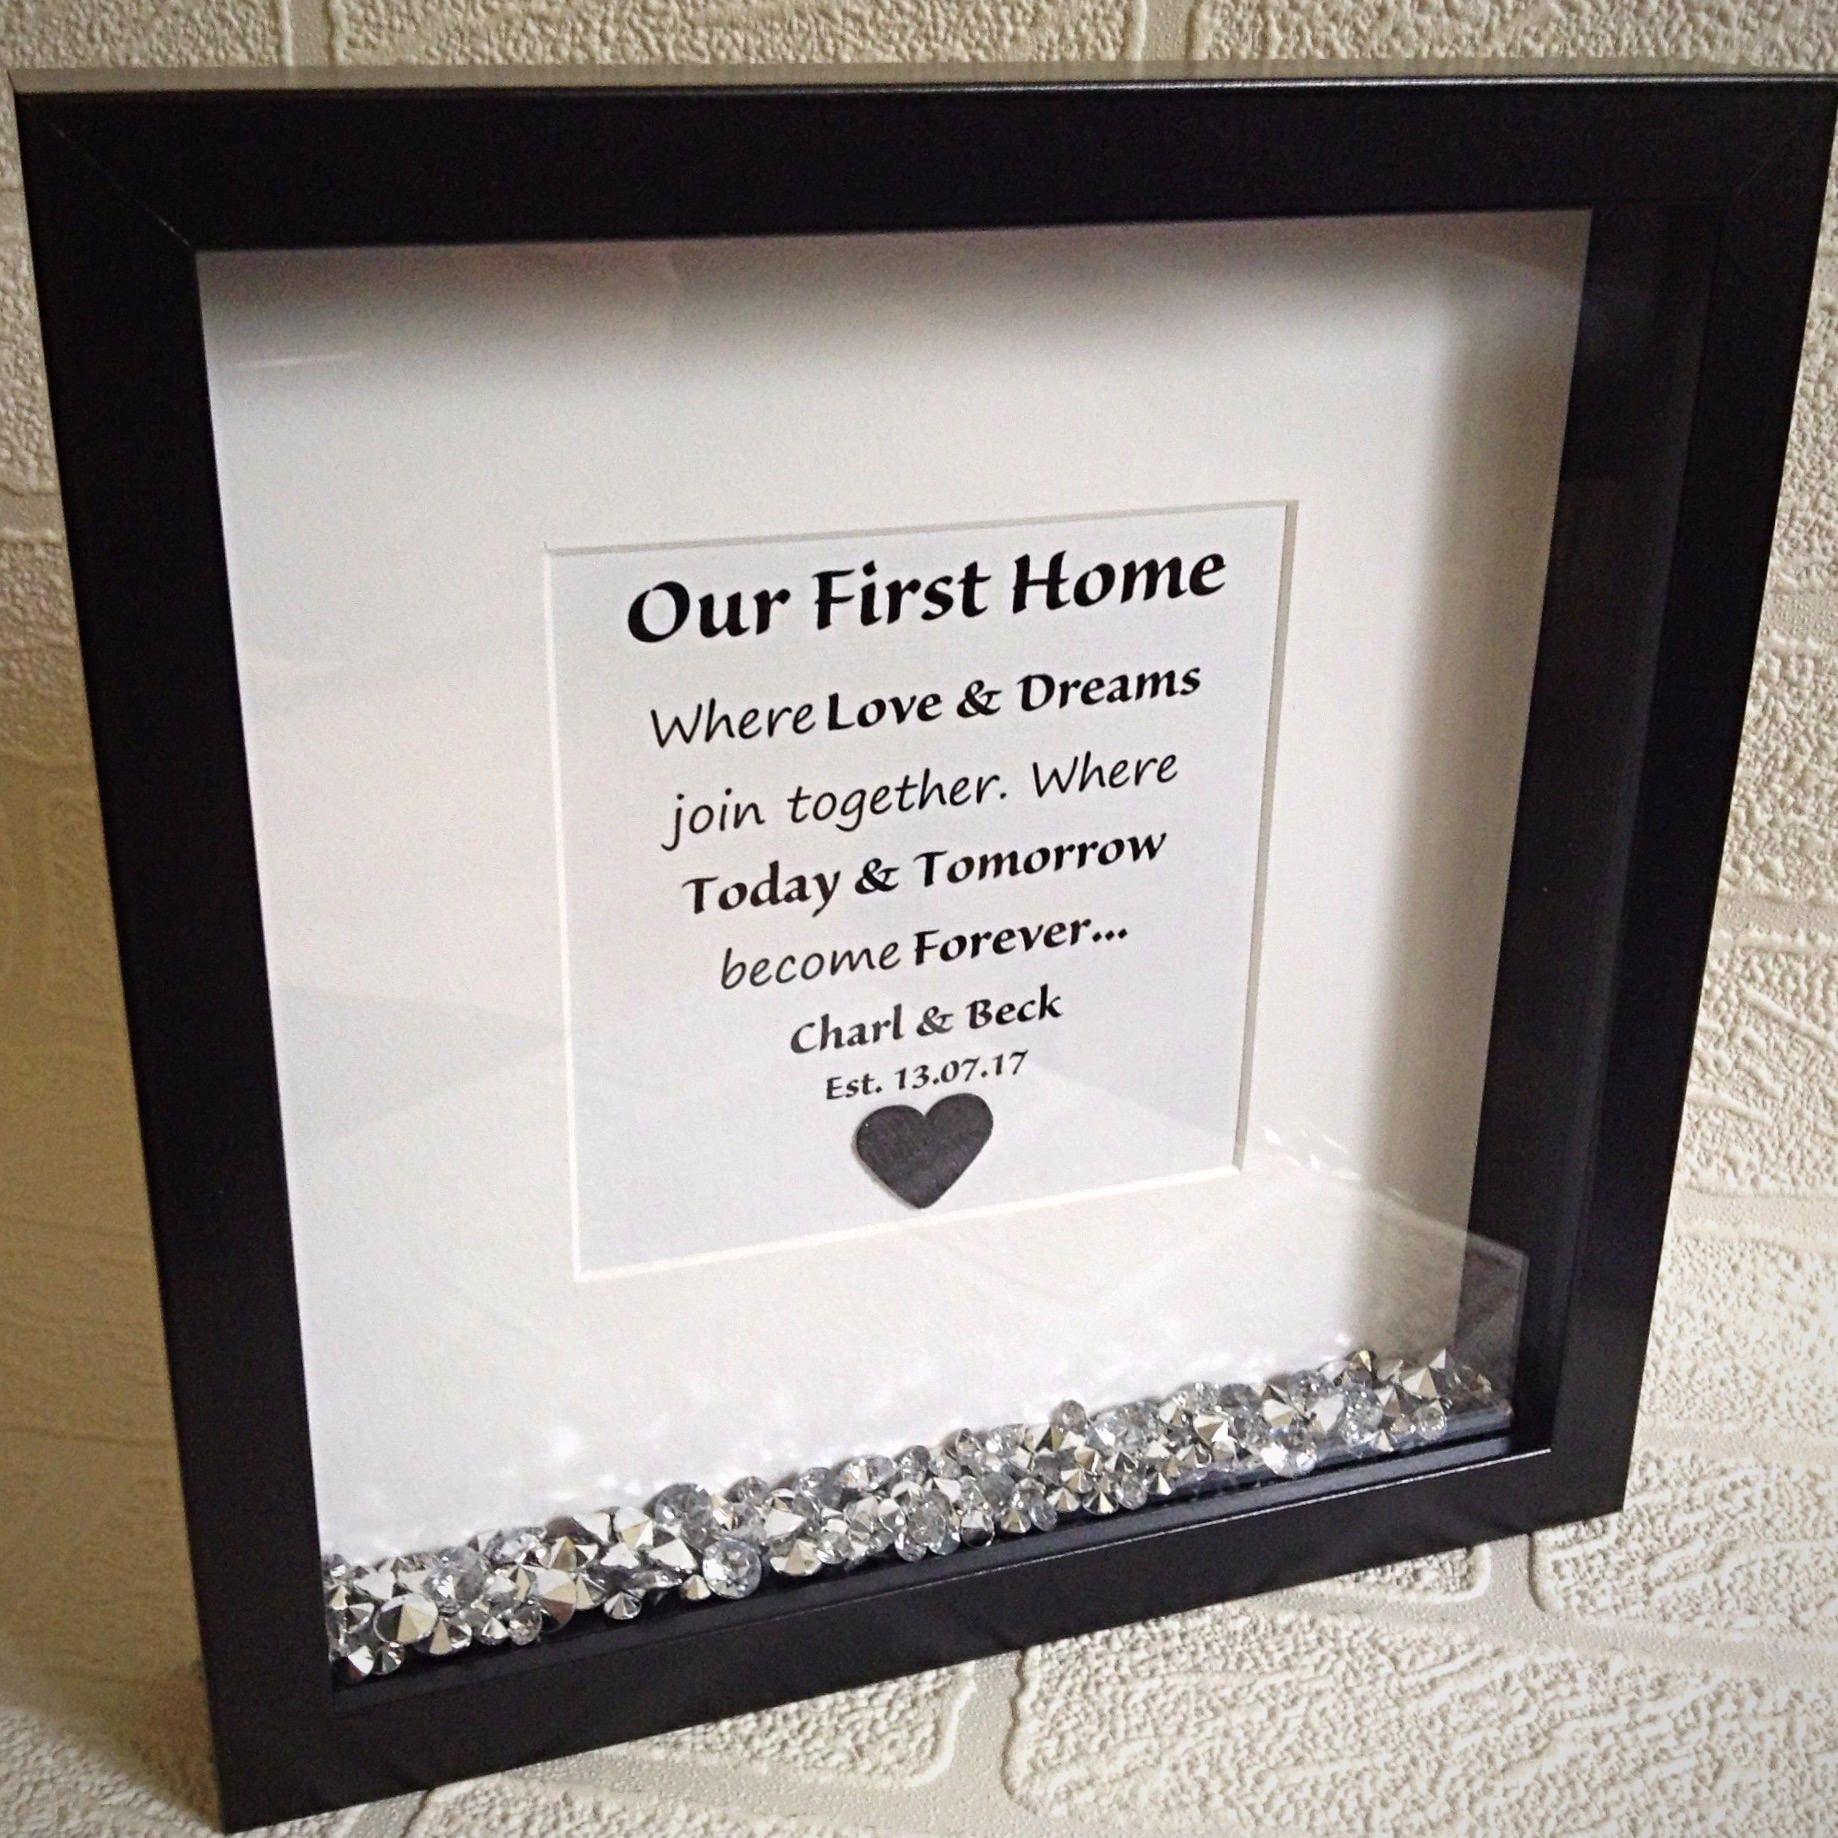 New home gift quote frame housewarming gift our first home 2561 jeuxipadfo Gallery